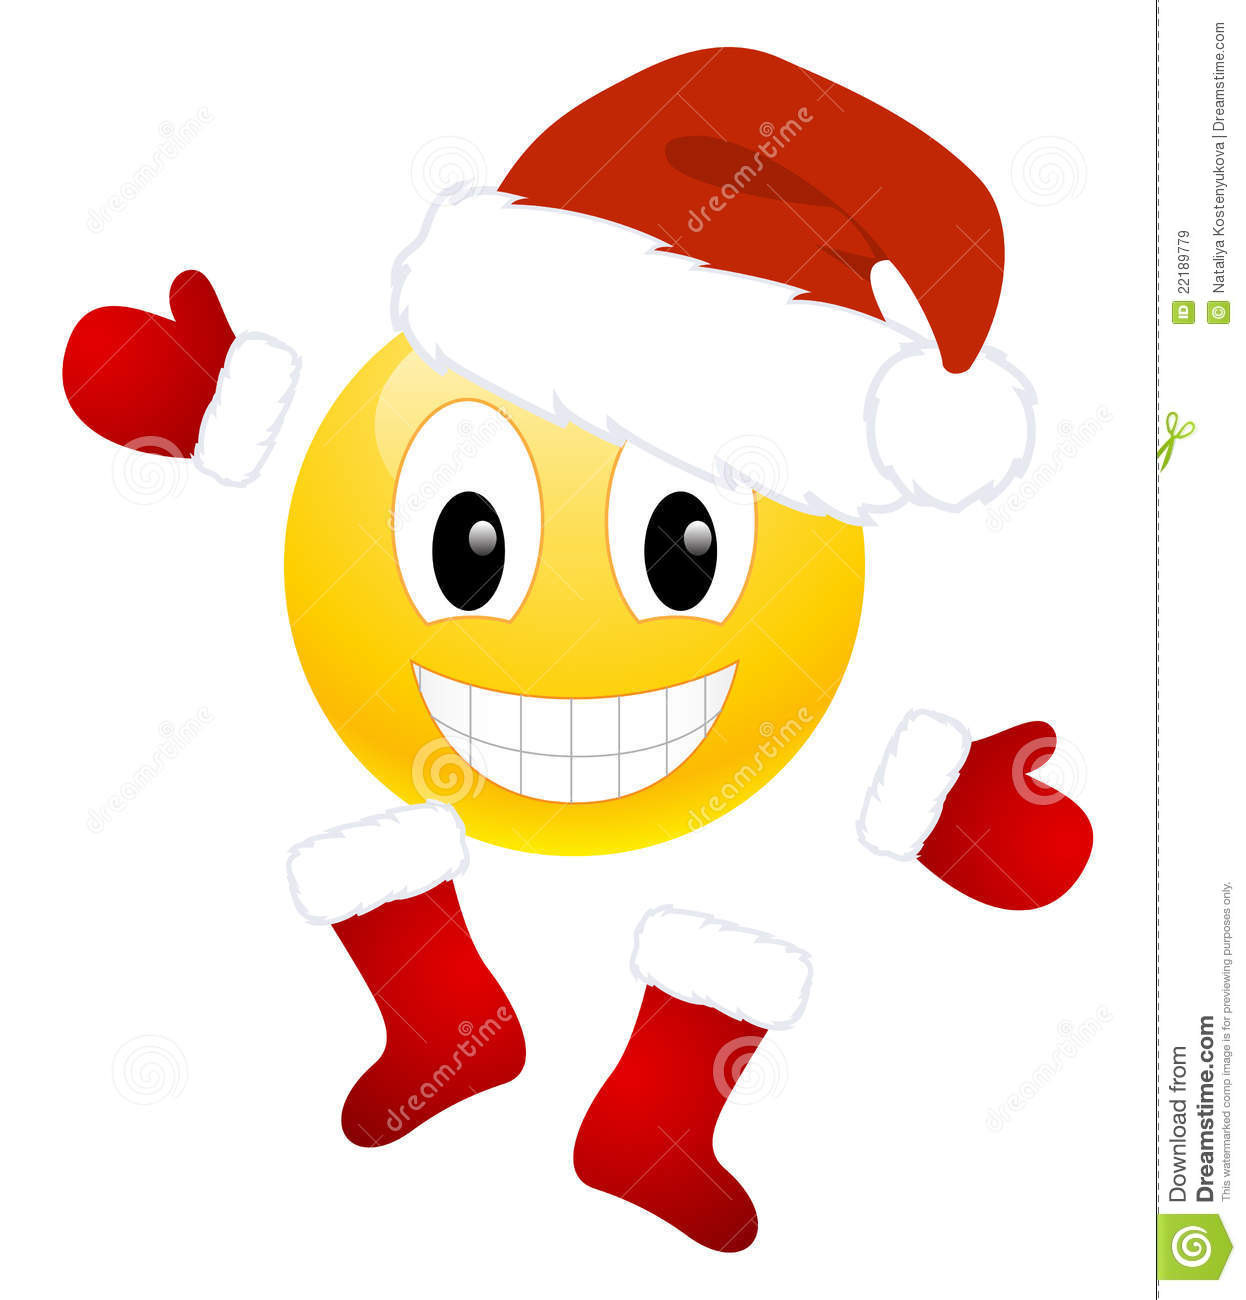 Christmas Emoticon Royalty Free Stock Images - Image: 22189779